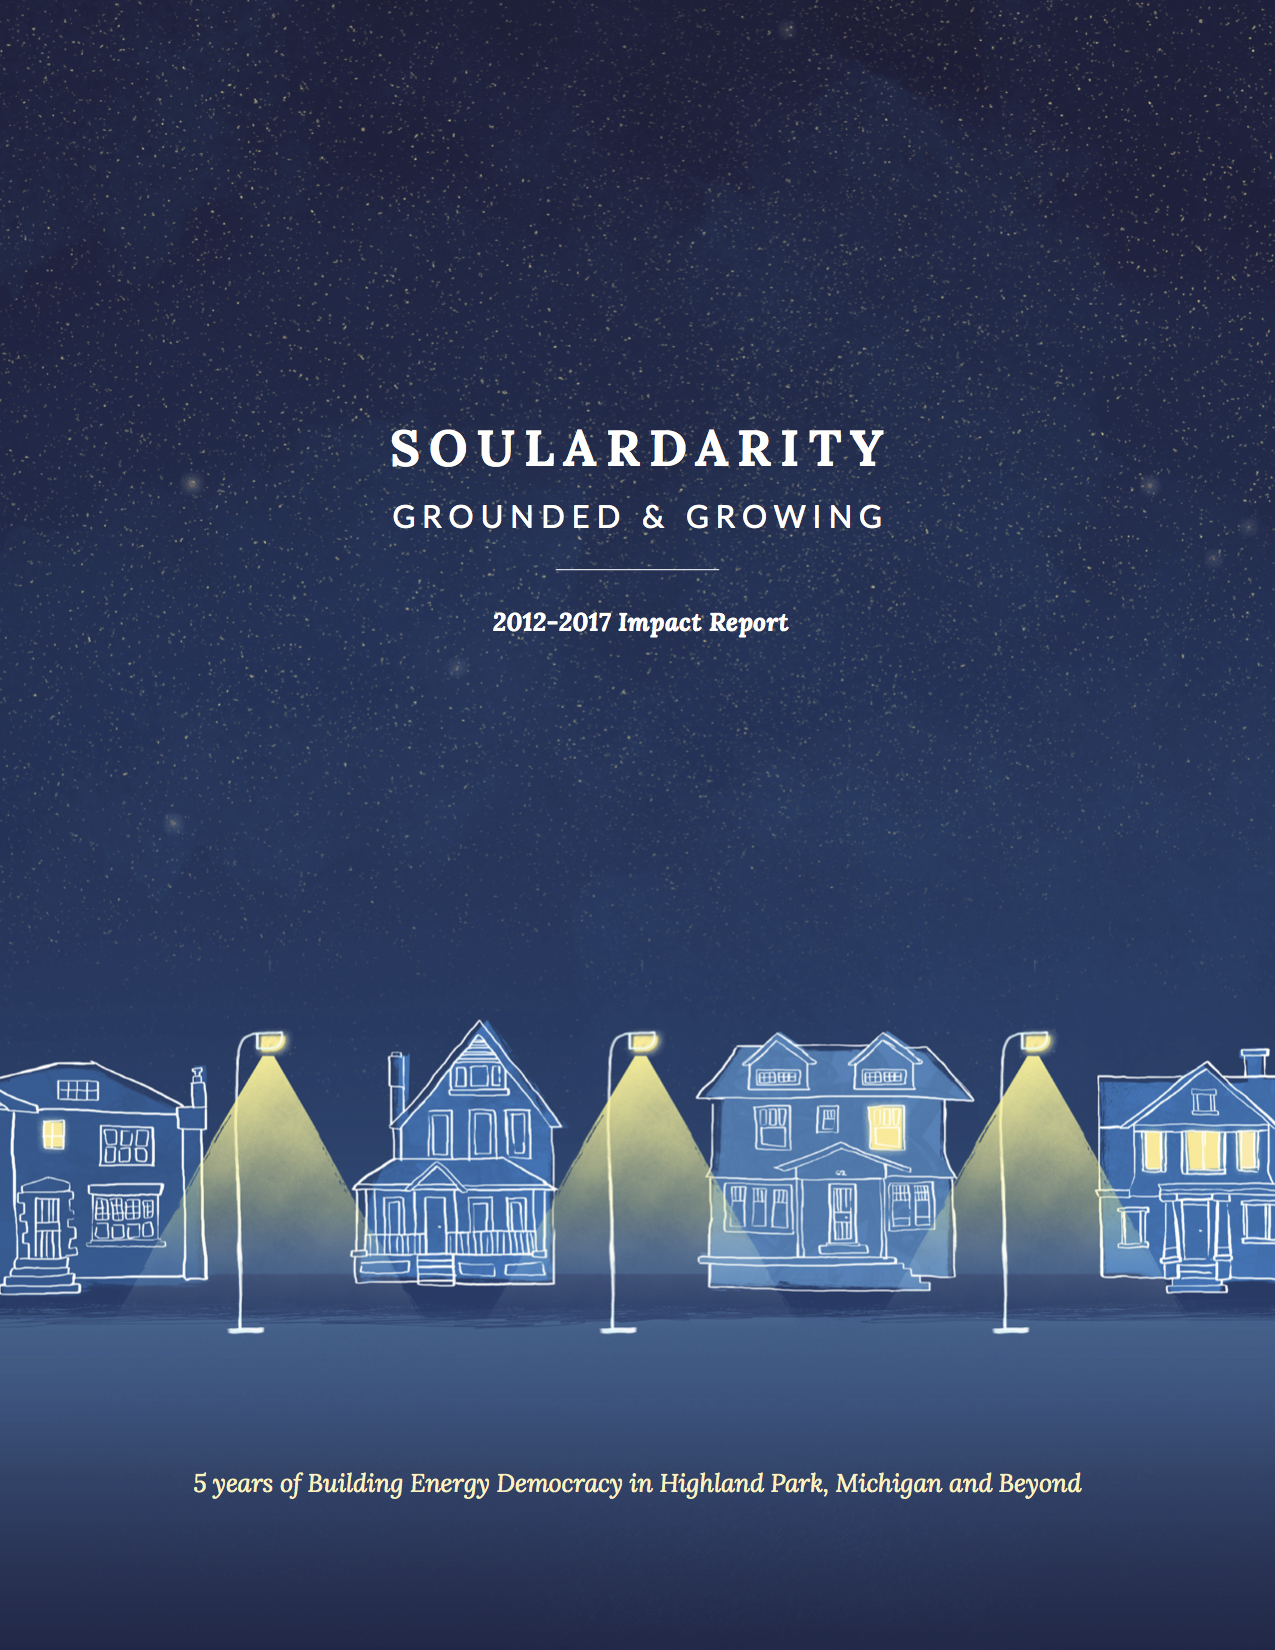 Souladarity-2012-2017-Impact-Report-COVER.png